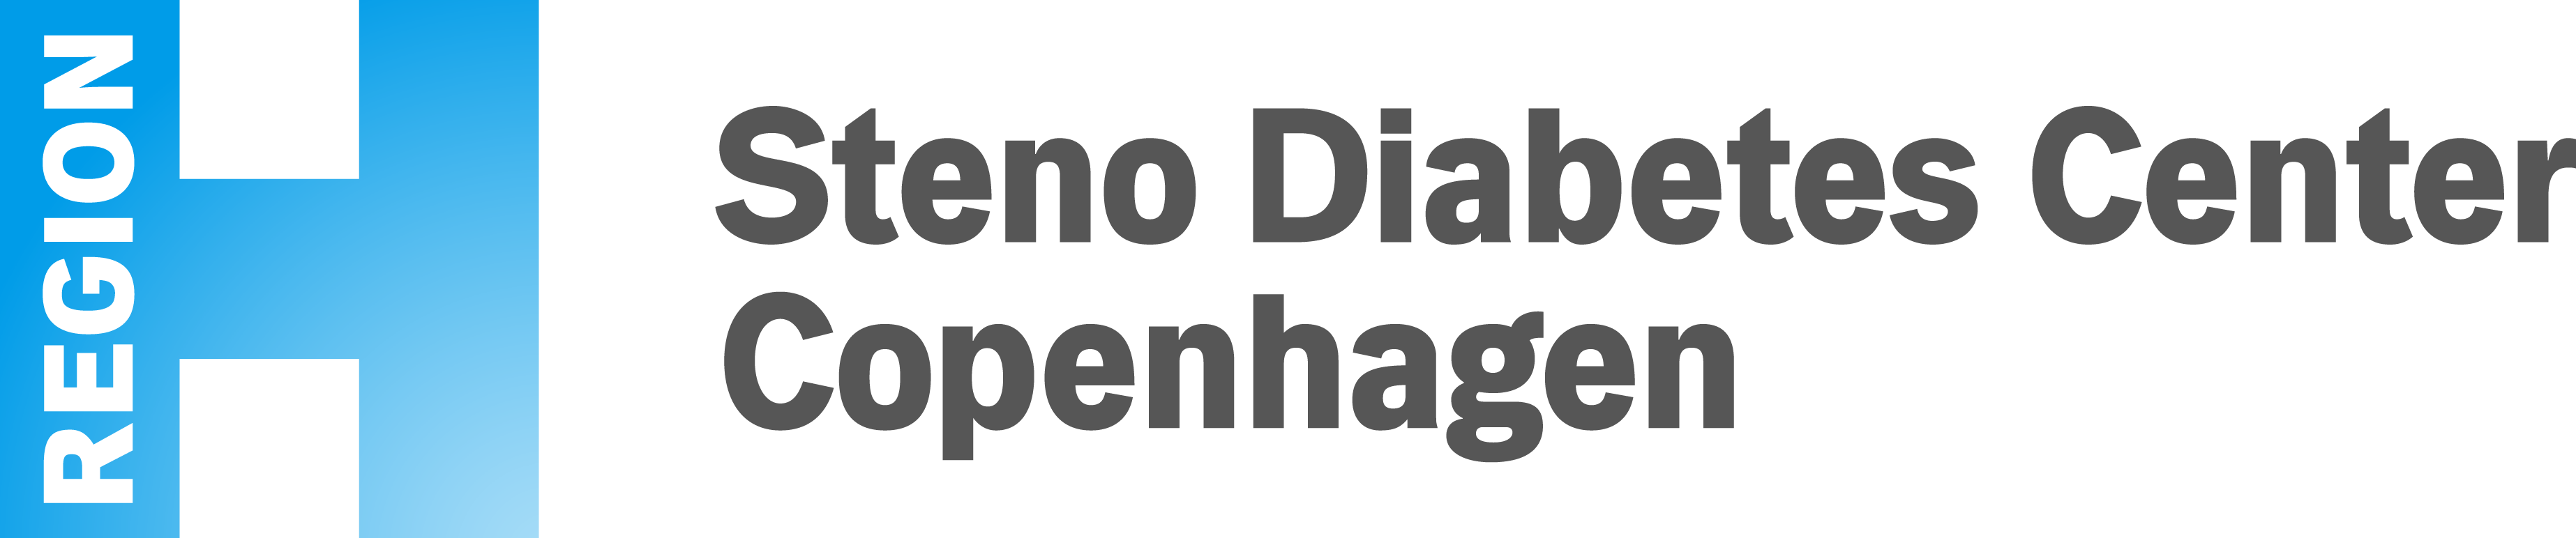 Steno Diabetes Center Copenhagen